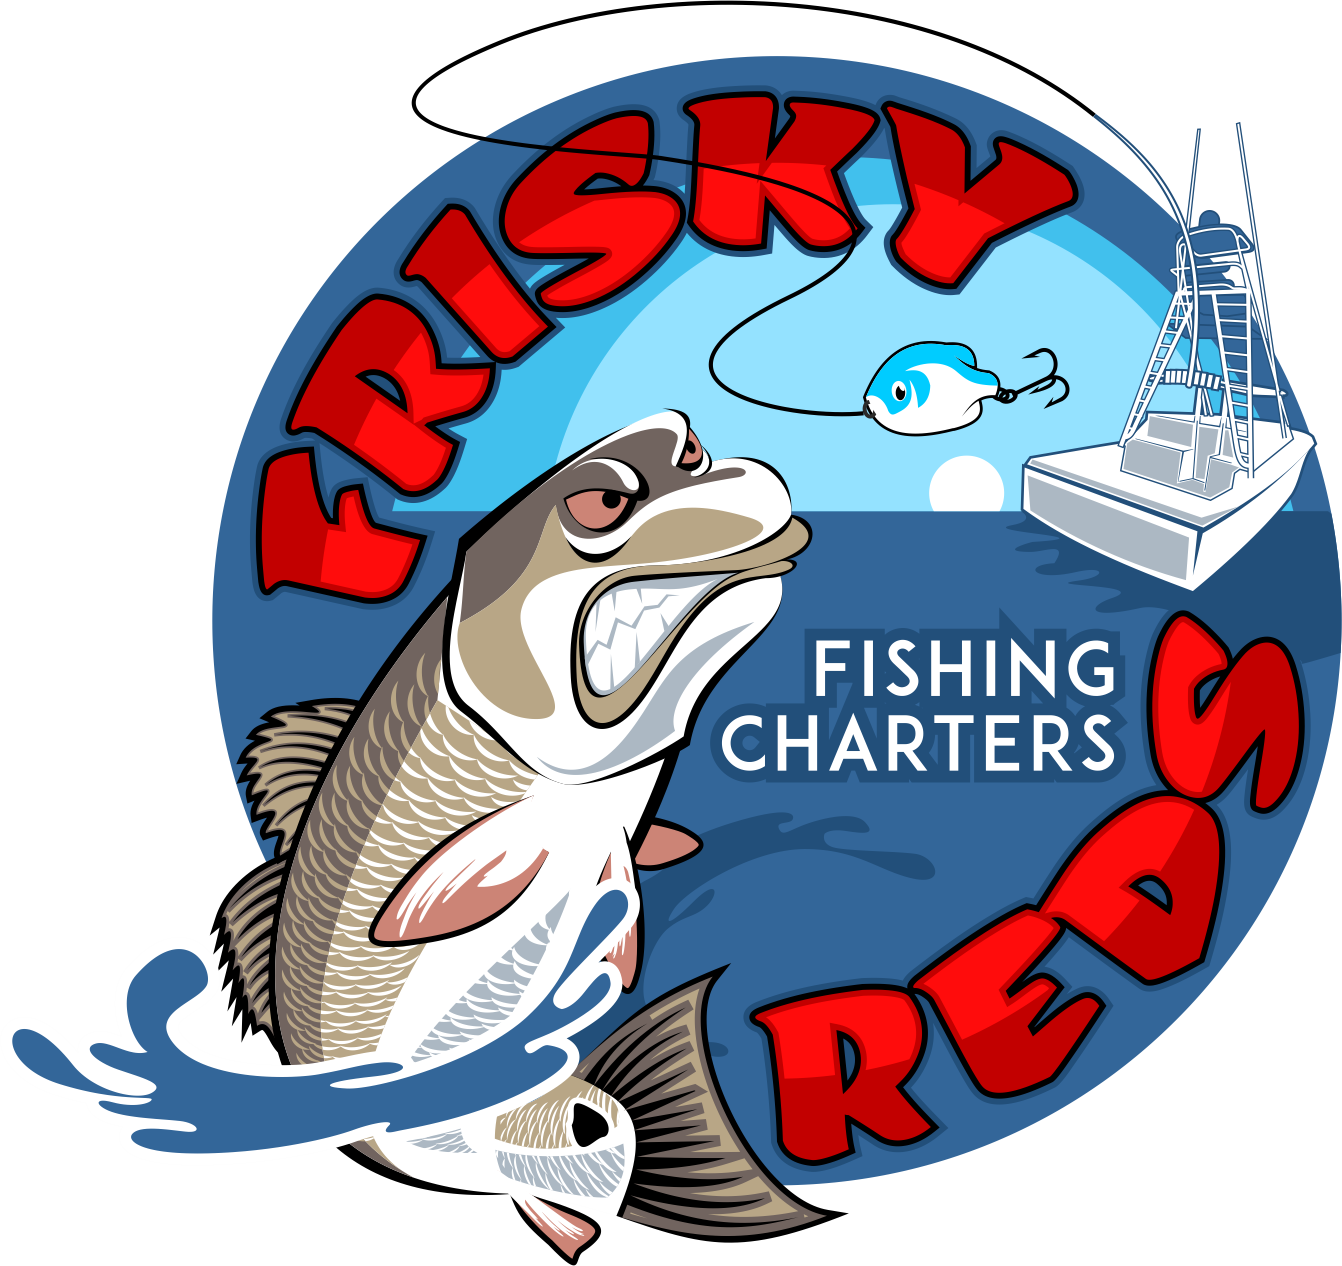 Frisky Reds Fishing Charters